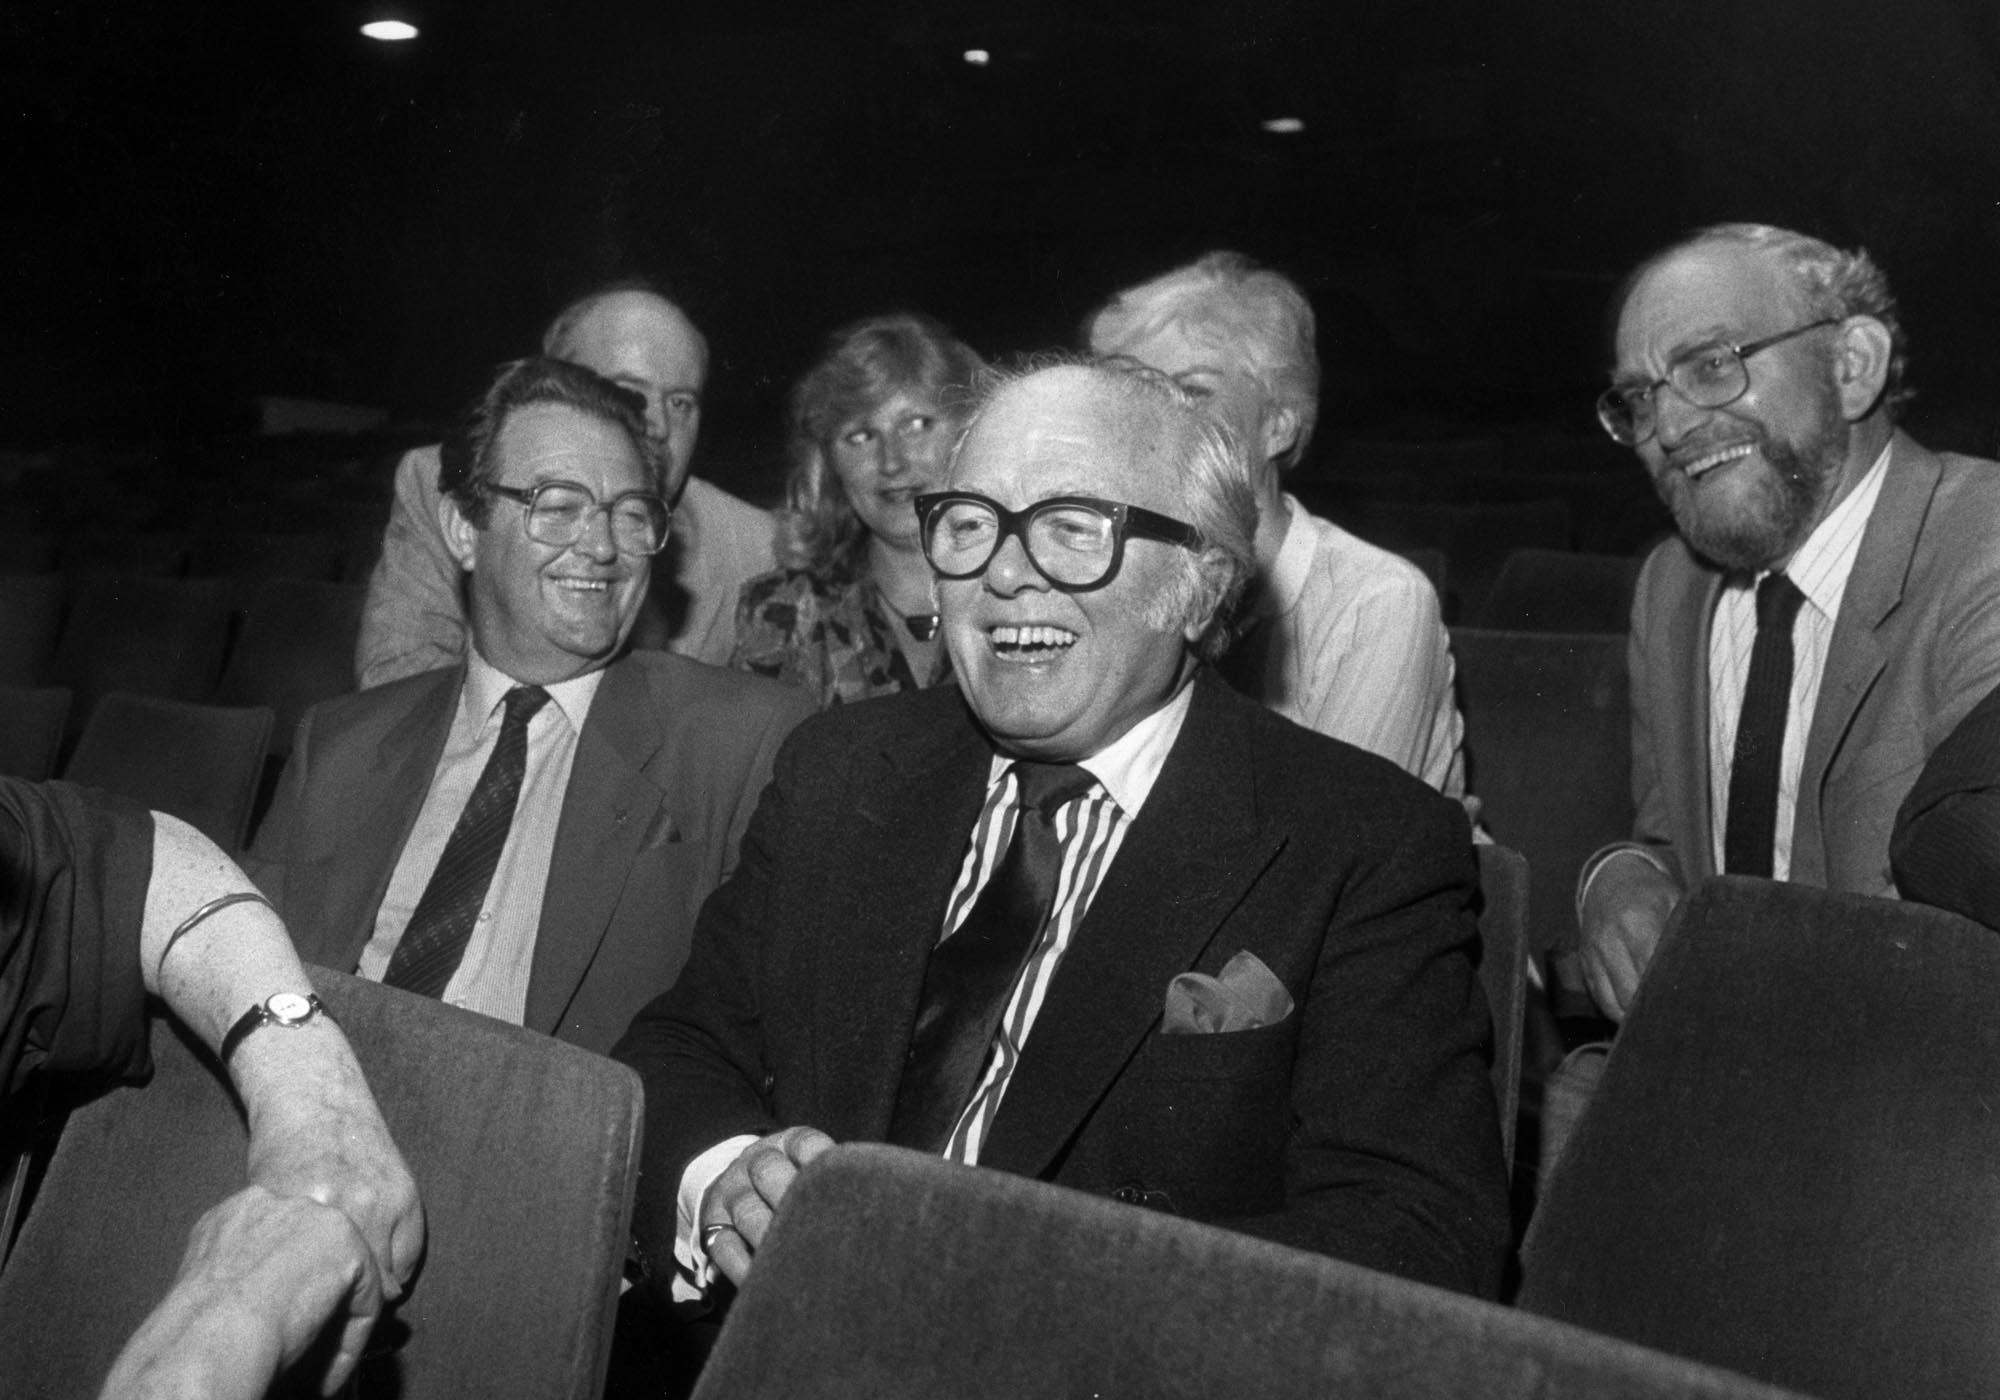 Richard Attenborough visiting the Theatre in May 1989 - Leicester Mercury